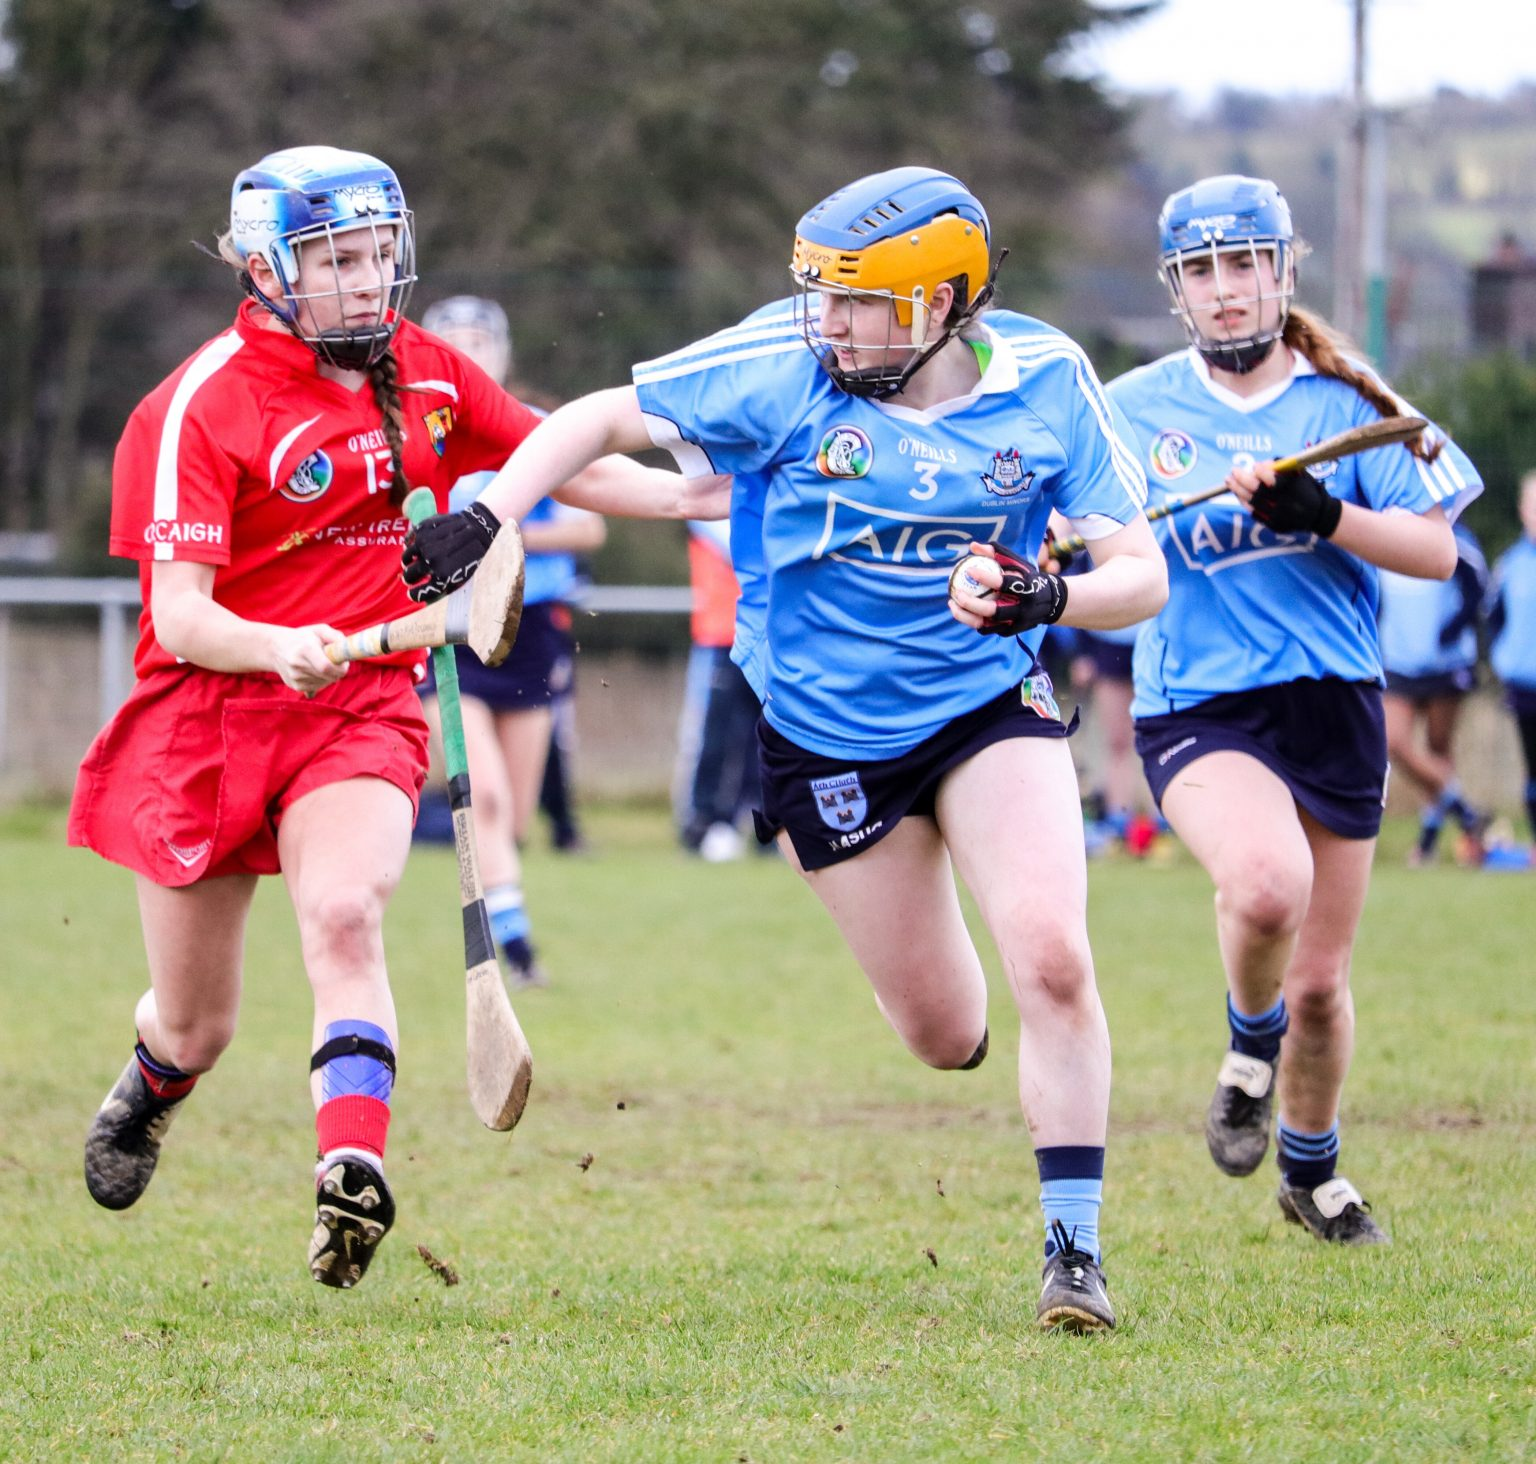 DUBLIN MINOR CAMOGIE SQUAD FACE CORK IN OPENING ROUND OF CHAMPIONSHIP